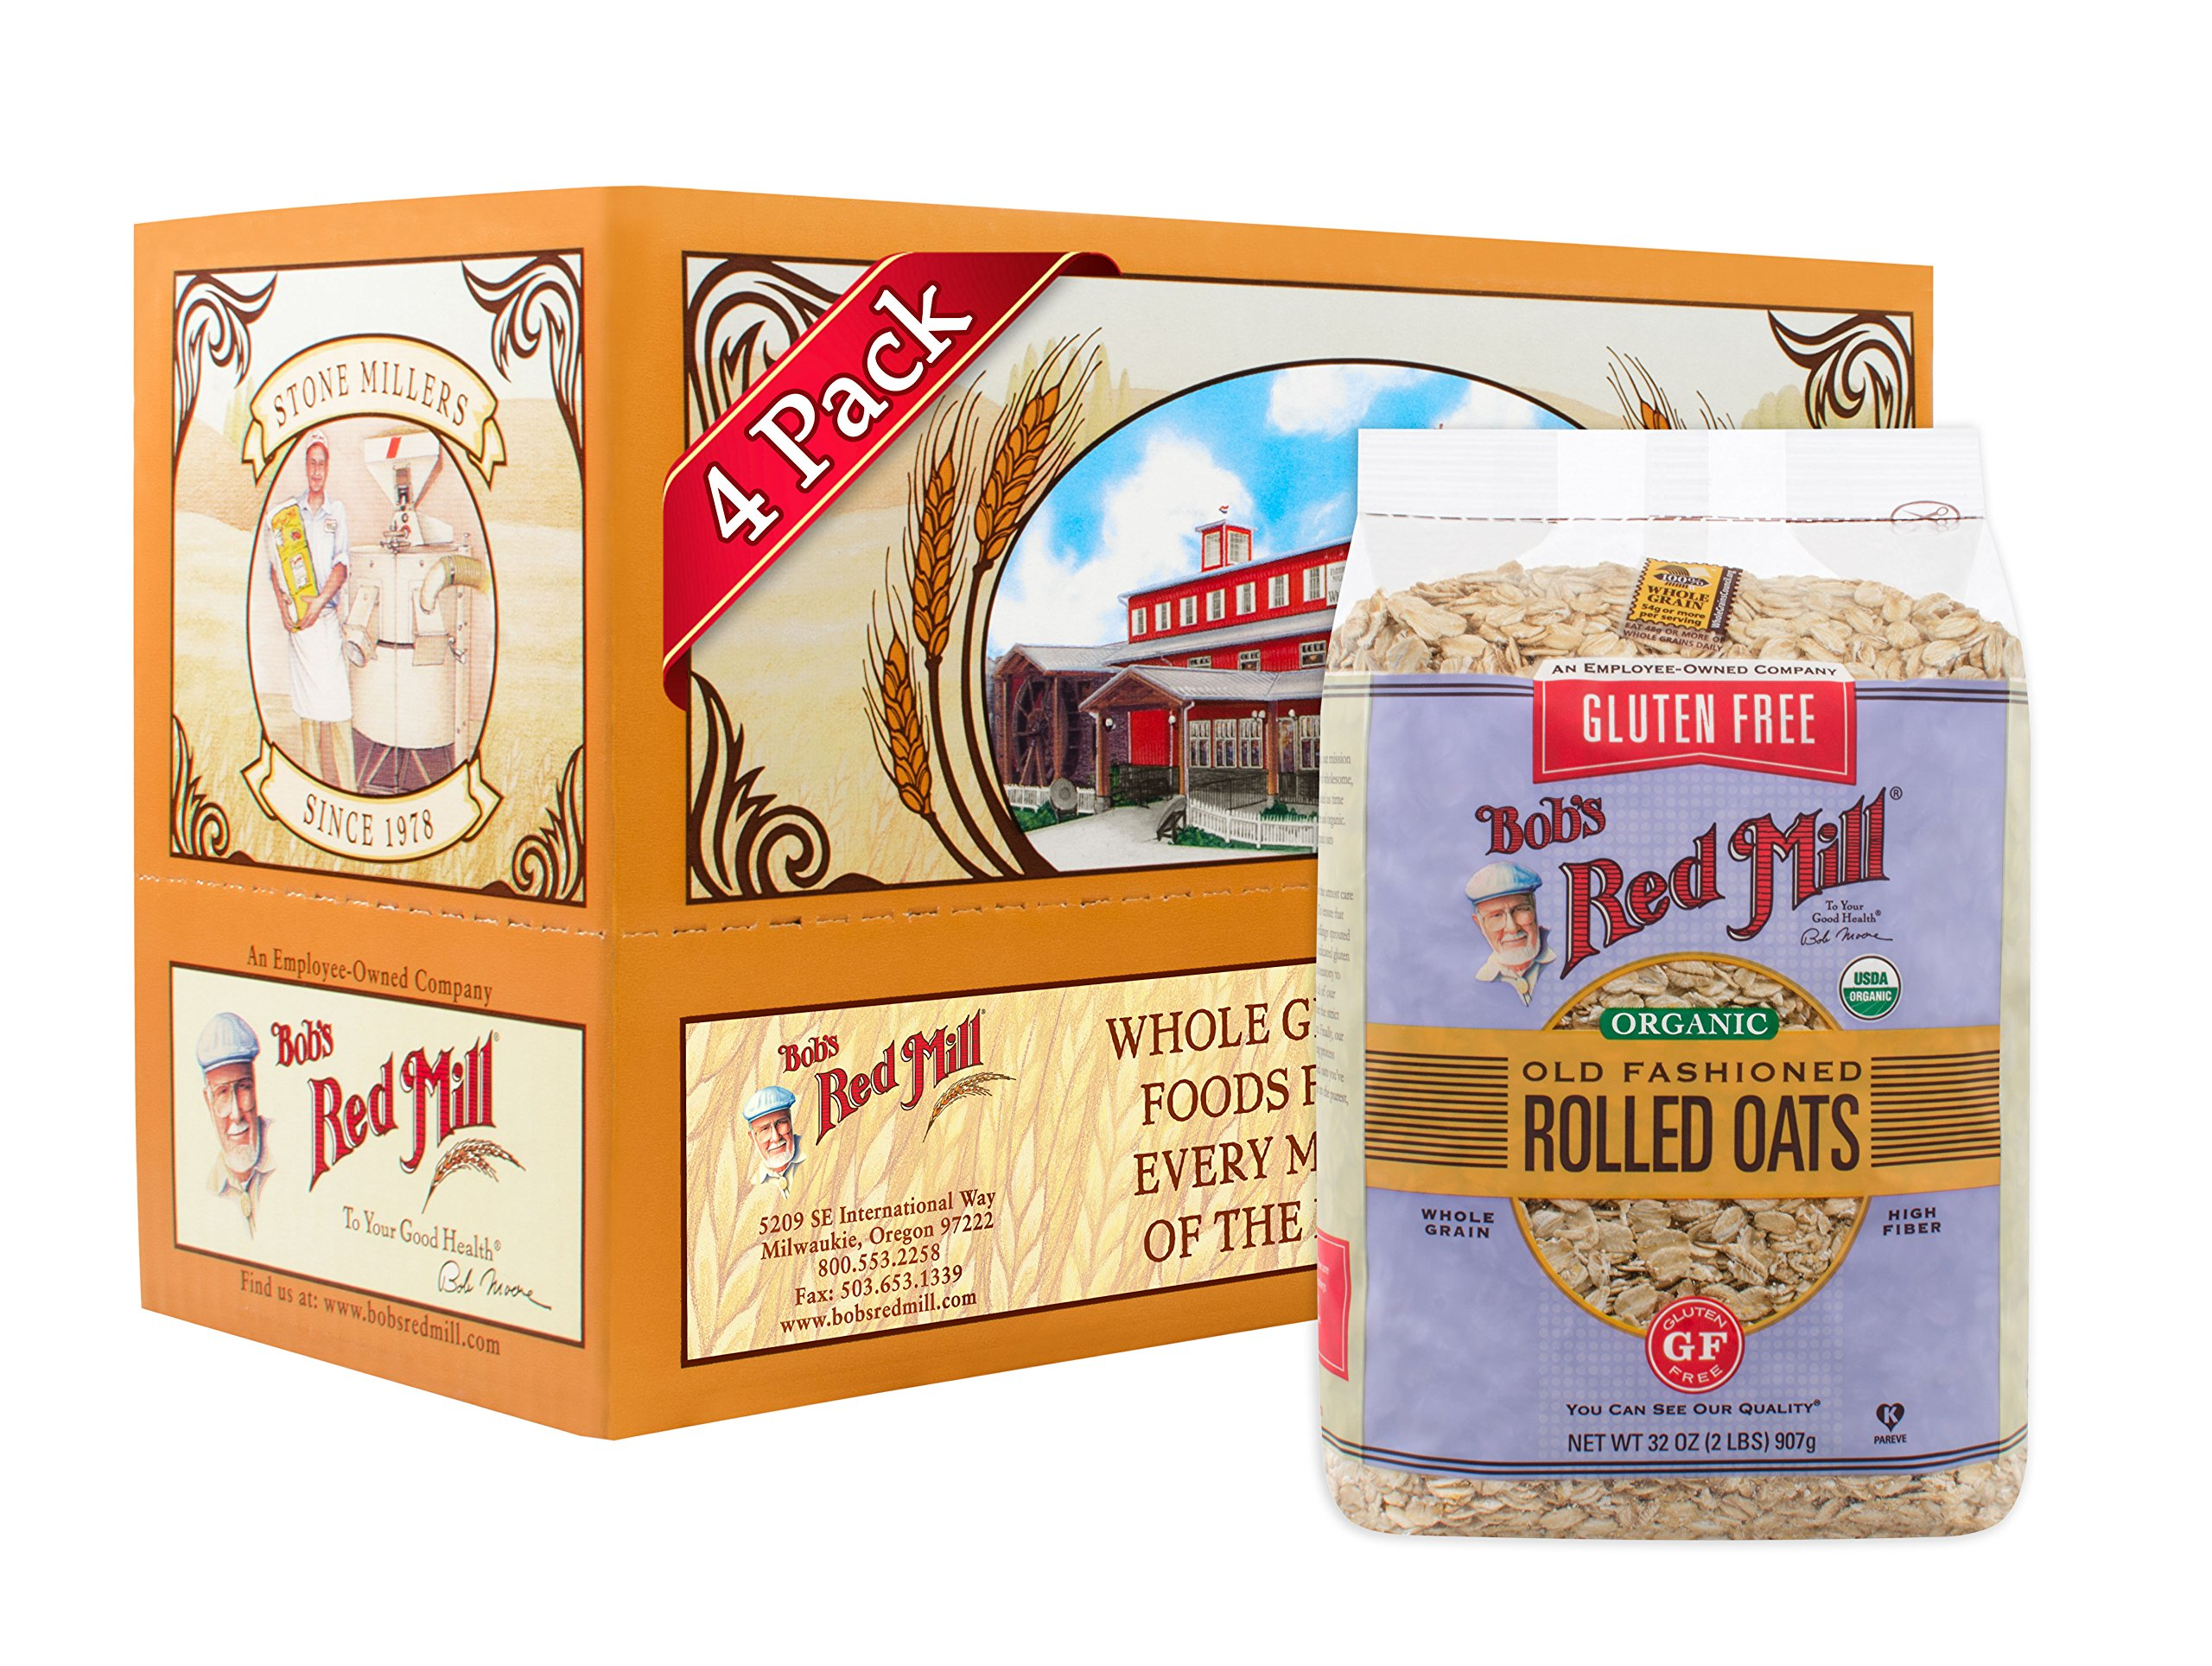 Bob's Red Mill Gluten Free Organic Old Fashioned Rolled Oats, 32 Ounce, 4 Count by Bob's Red Mill